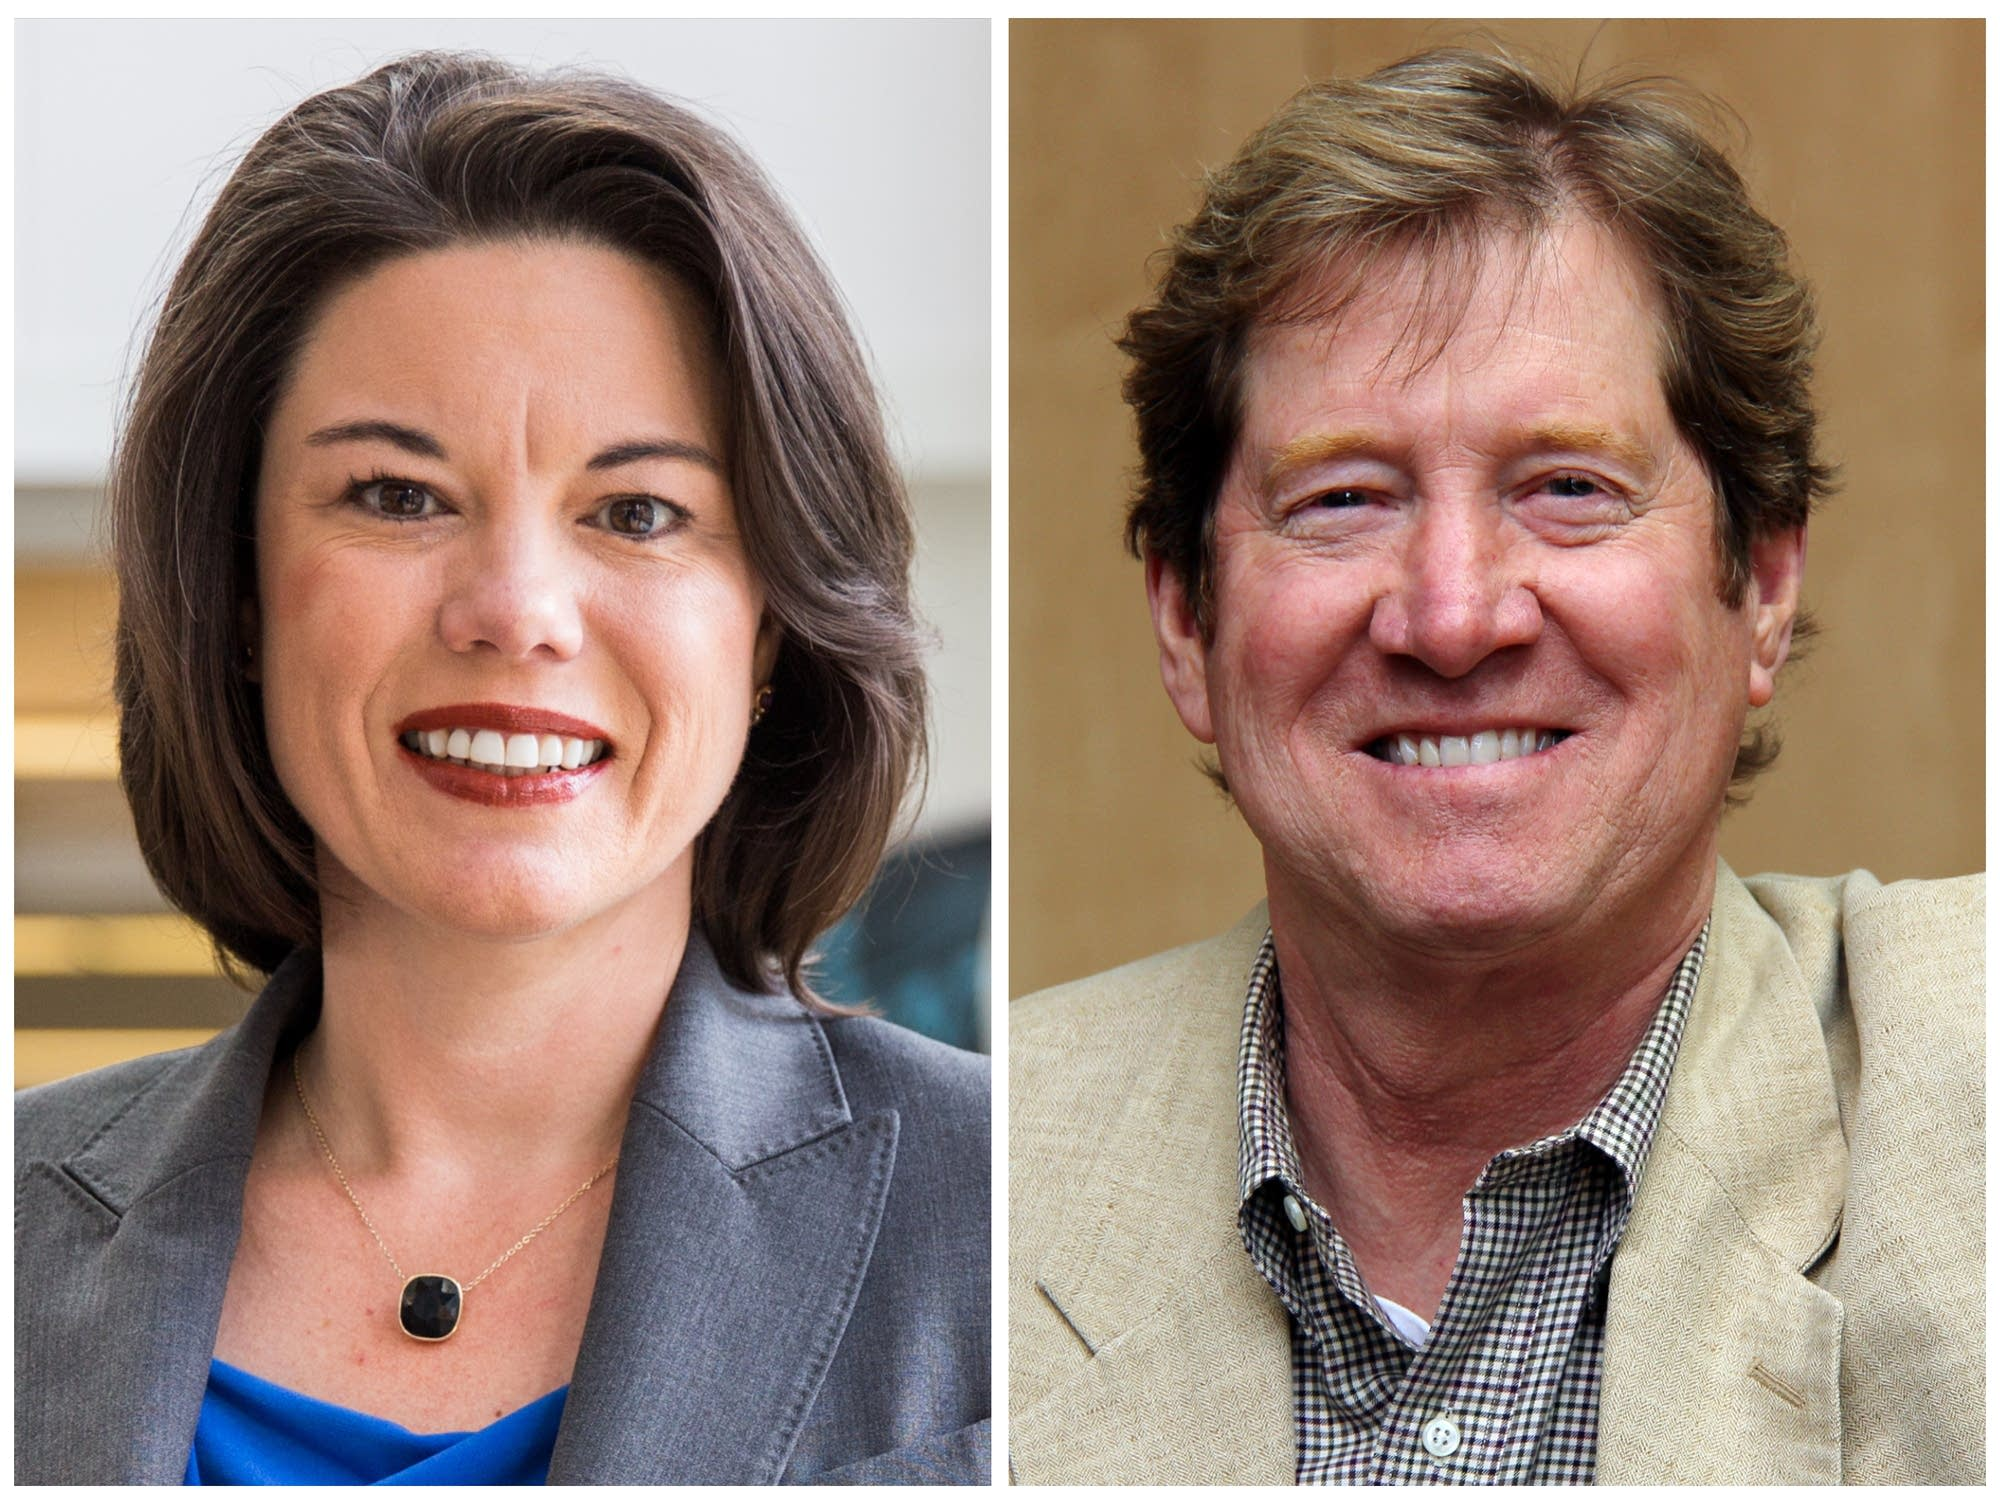 Democrat candidate Angie Craig and Republican incumbent Jason Lewis.